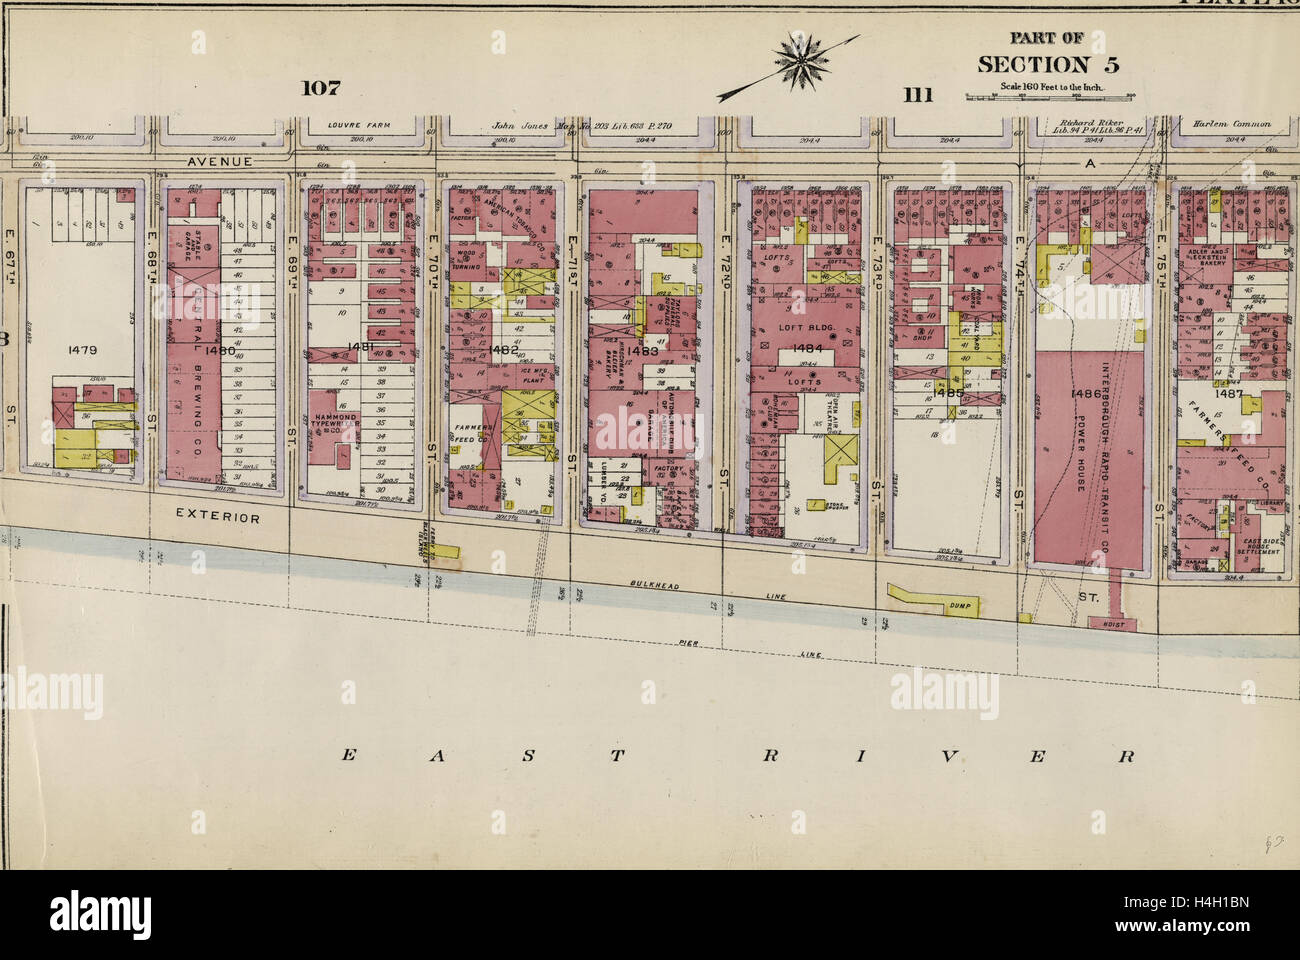 Part of Section 5: Plate 109, New York, USA - Stock Image